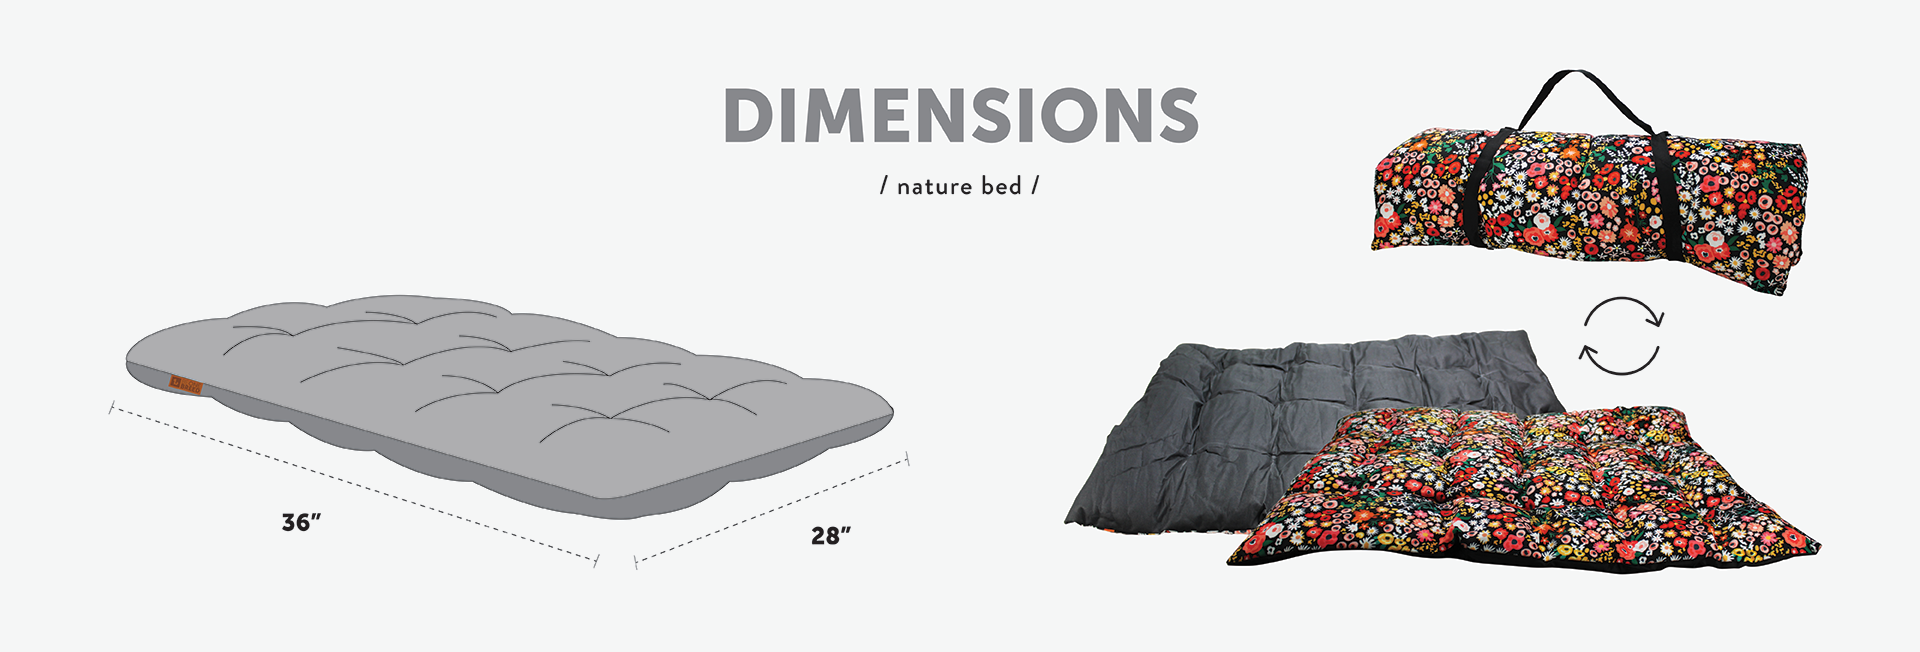 dimensions-nature-bed-wildflowers-for-dogs-english